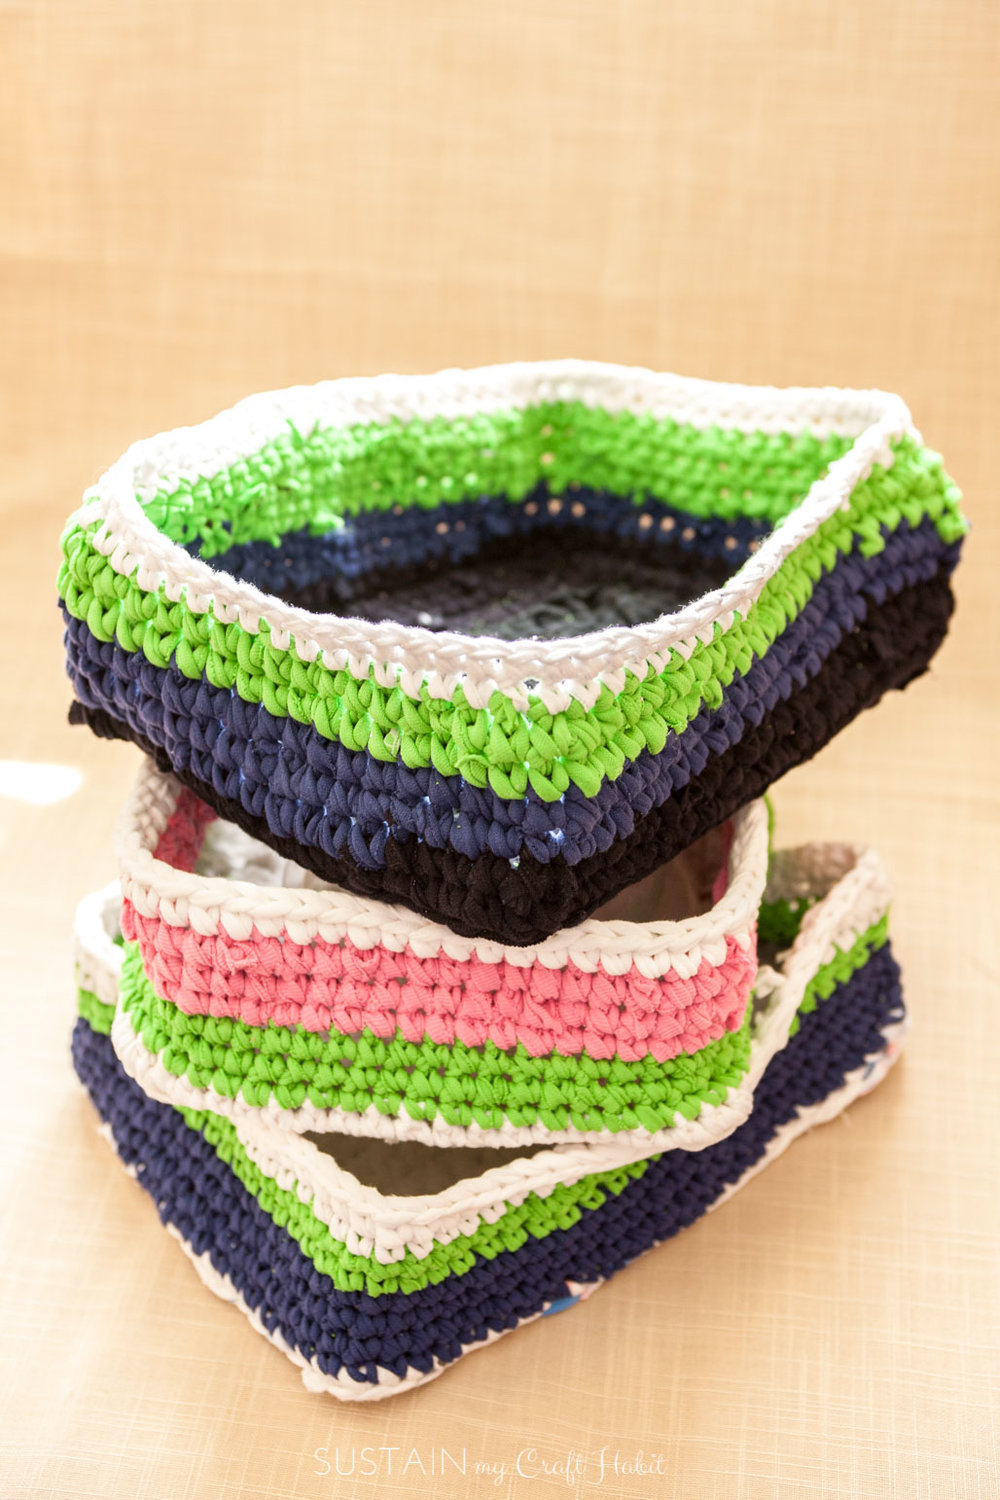 Free crochet rectangular basket pattern using t-shirt yarn | Cheap DIY organization ideas for the home | Laudry room organizing baskets | Upcycling craft idea - SustainMyCraftHabit